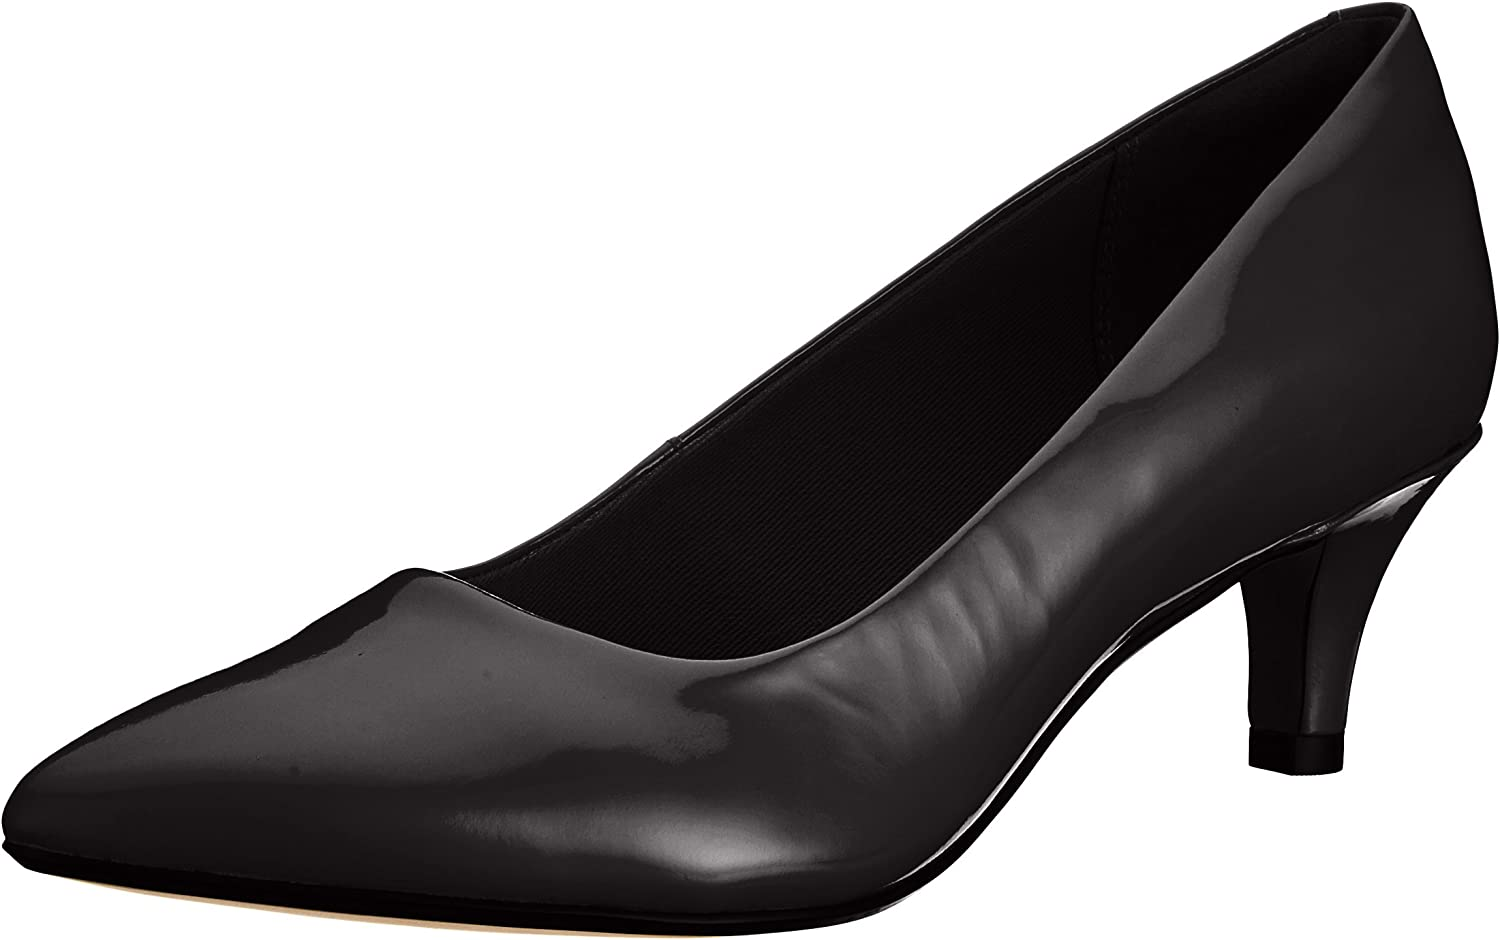 Clarks Women's Linvale Jerica Patent Leather Pointed Court shoes